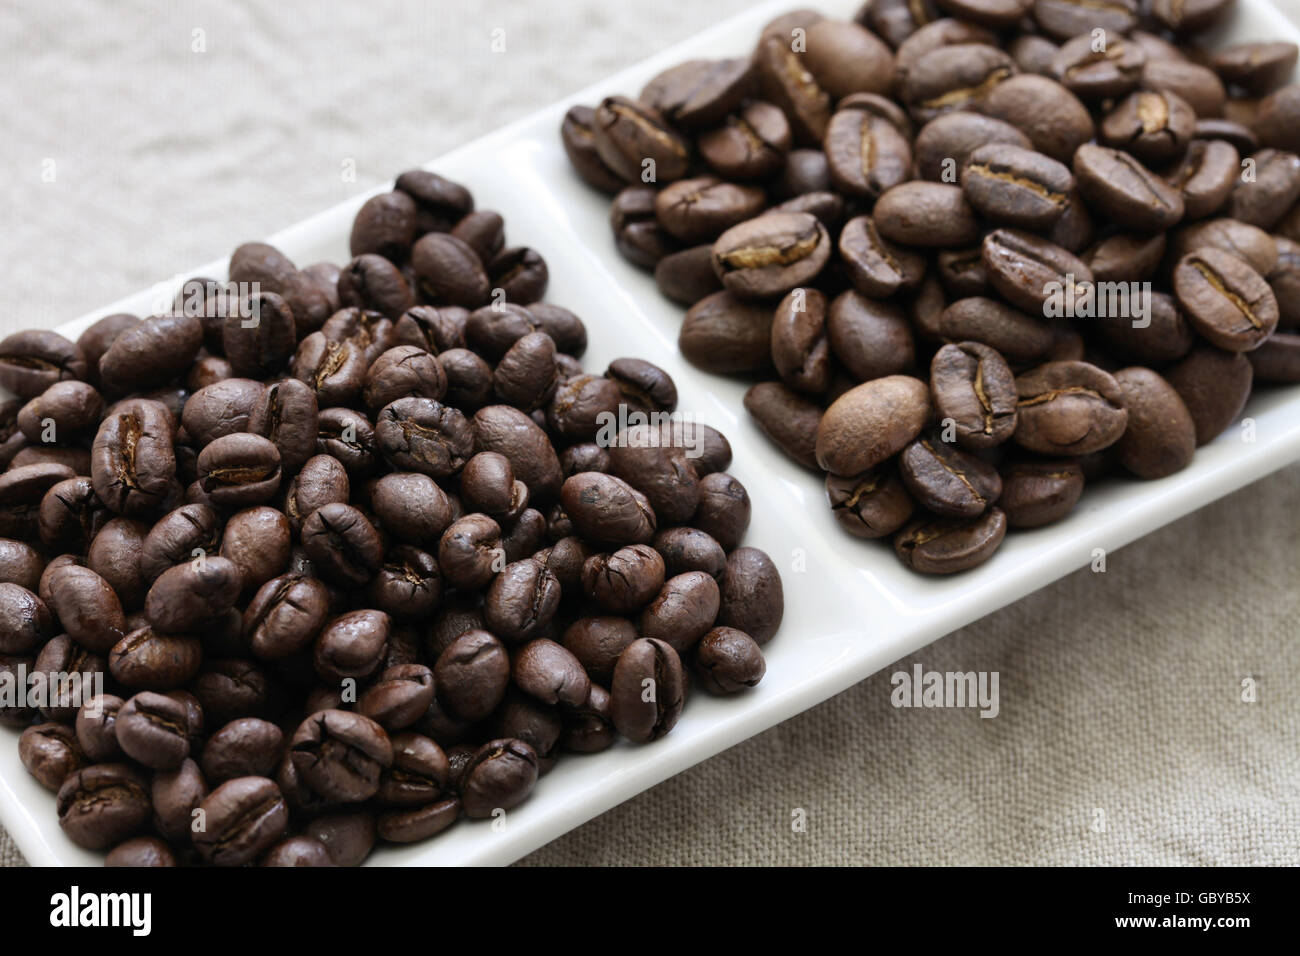 roasted coffee beans, peaberry and flat bean - Stock Image